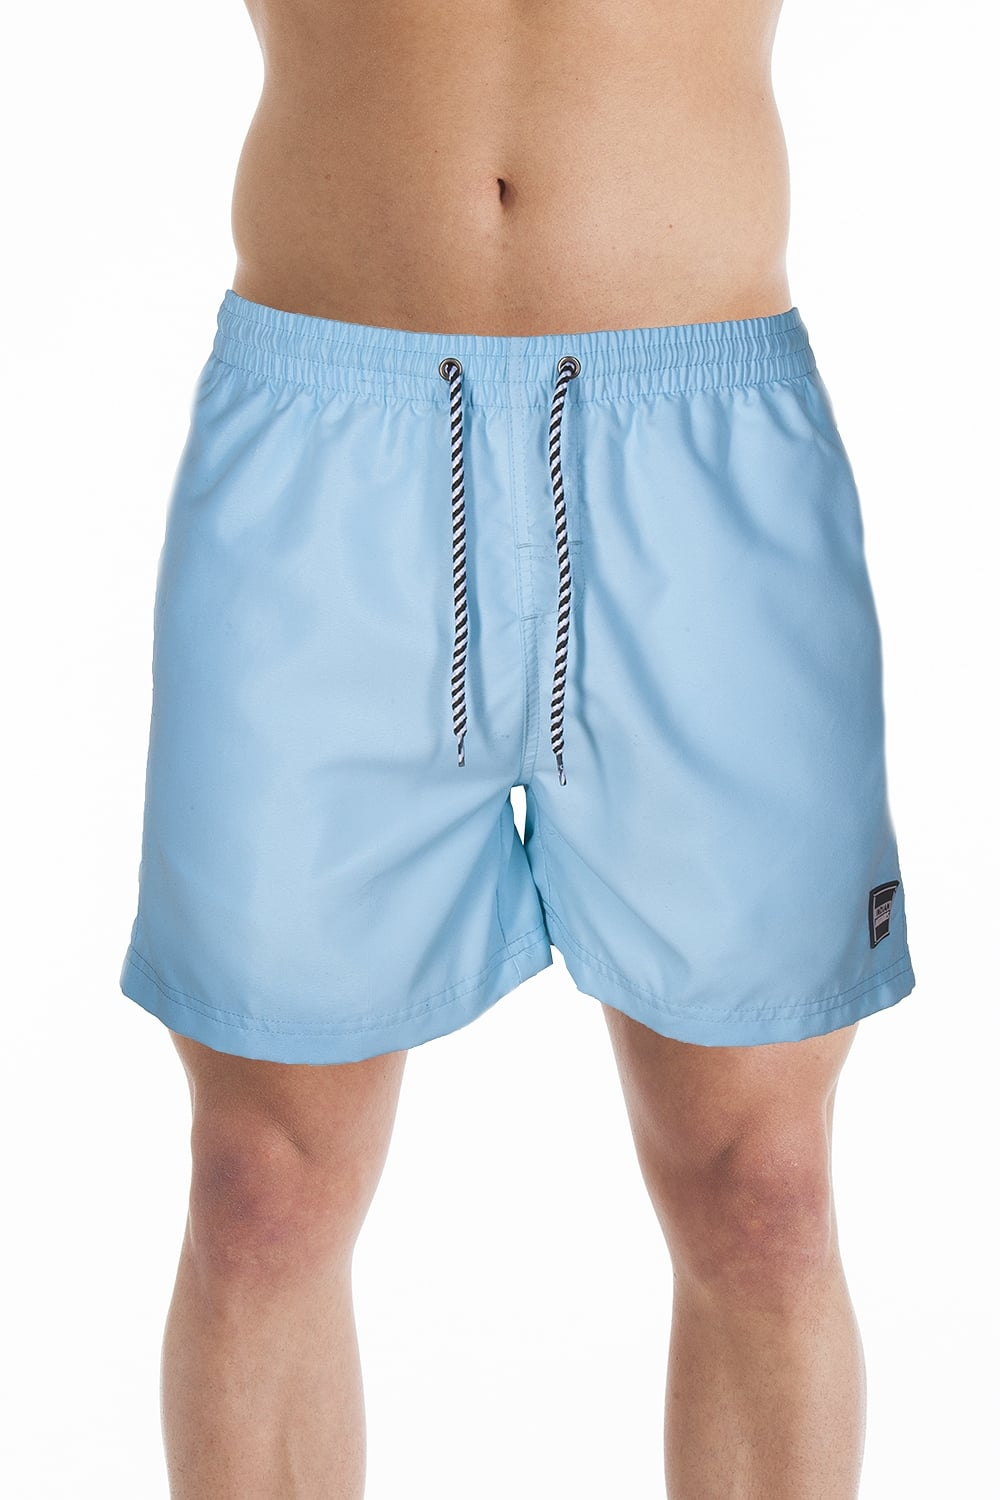 769169a40b INDIAN AFFAIRS Mens Light Blue Swimming Shorts